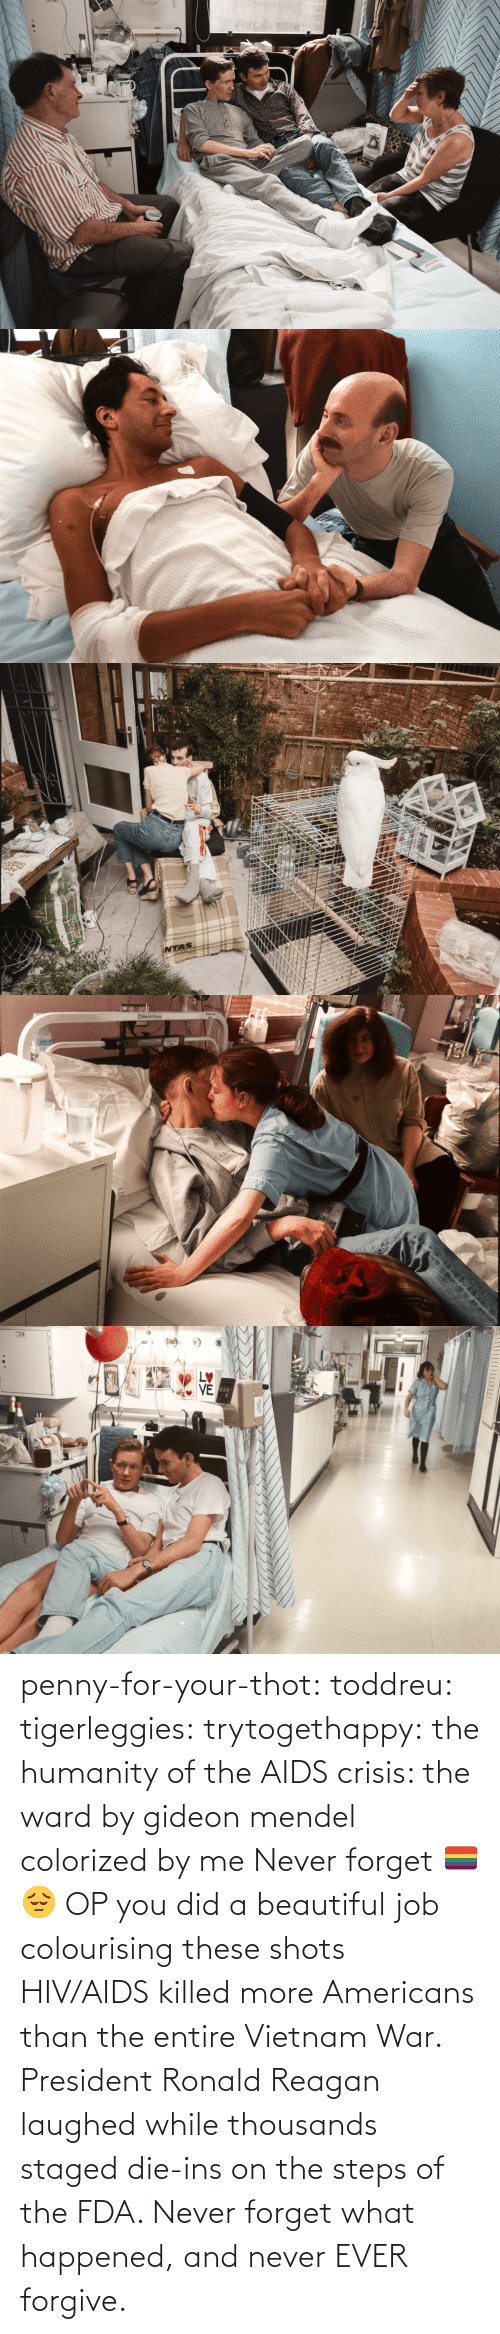 Colorized: STVE  yboagt   INTAS   ENesbit Evans  CAN   LETTI penny-for-your-thot: toddreu:  tigerleggies:  trytogethappy:  the humanity of the AIDS crisis: the ward by gideon mendel colorized by me   Never forget 🏳️‍🌈😔   OP you did a beautiful job colourising these shots   HIV/AIDS killed more Americans than the entire Vietnam War. President Ronald Reagan laughed while thousands staged die-ins on the steps of the FDA. Never forget what happened, and never EVER forgive.